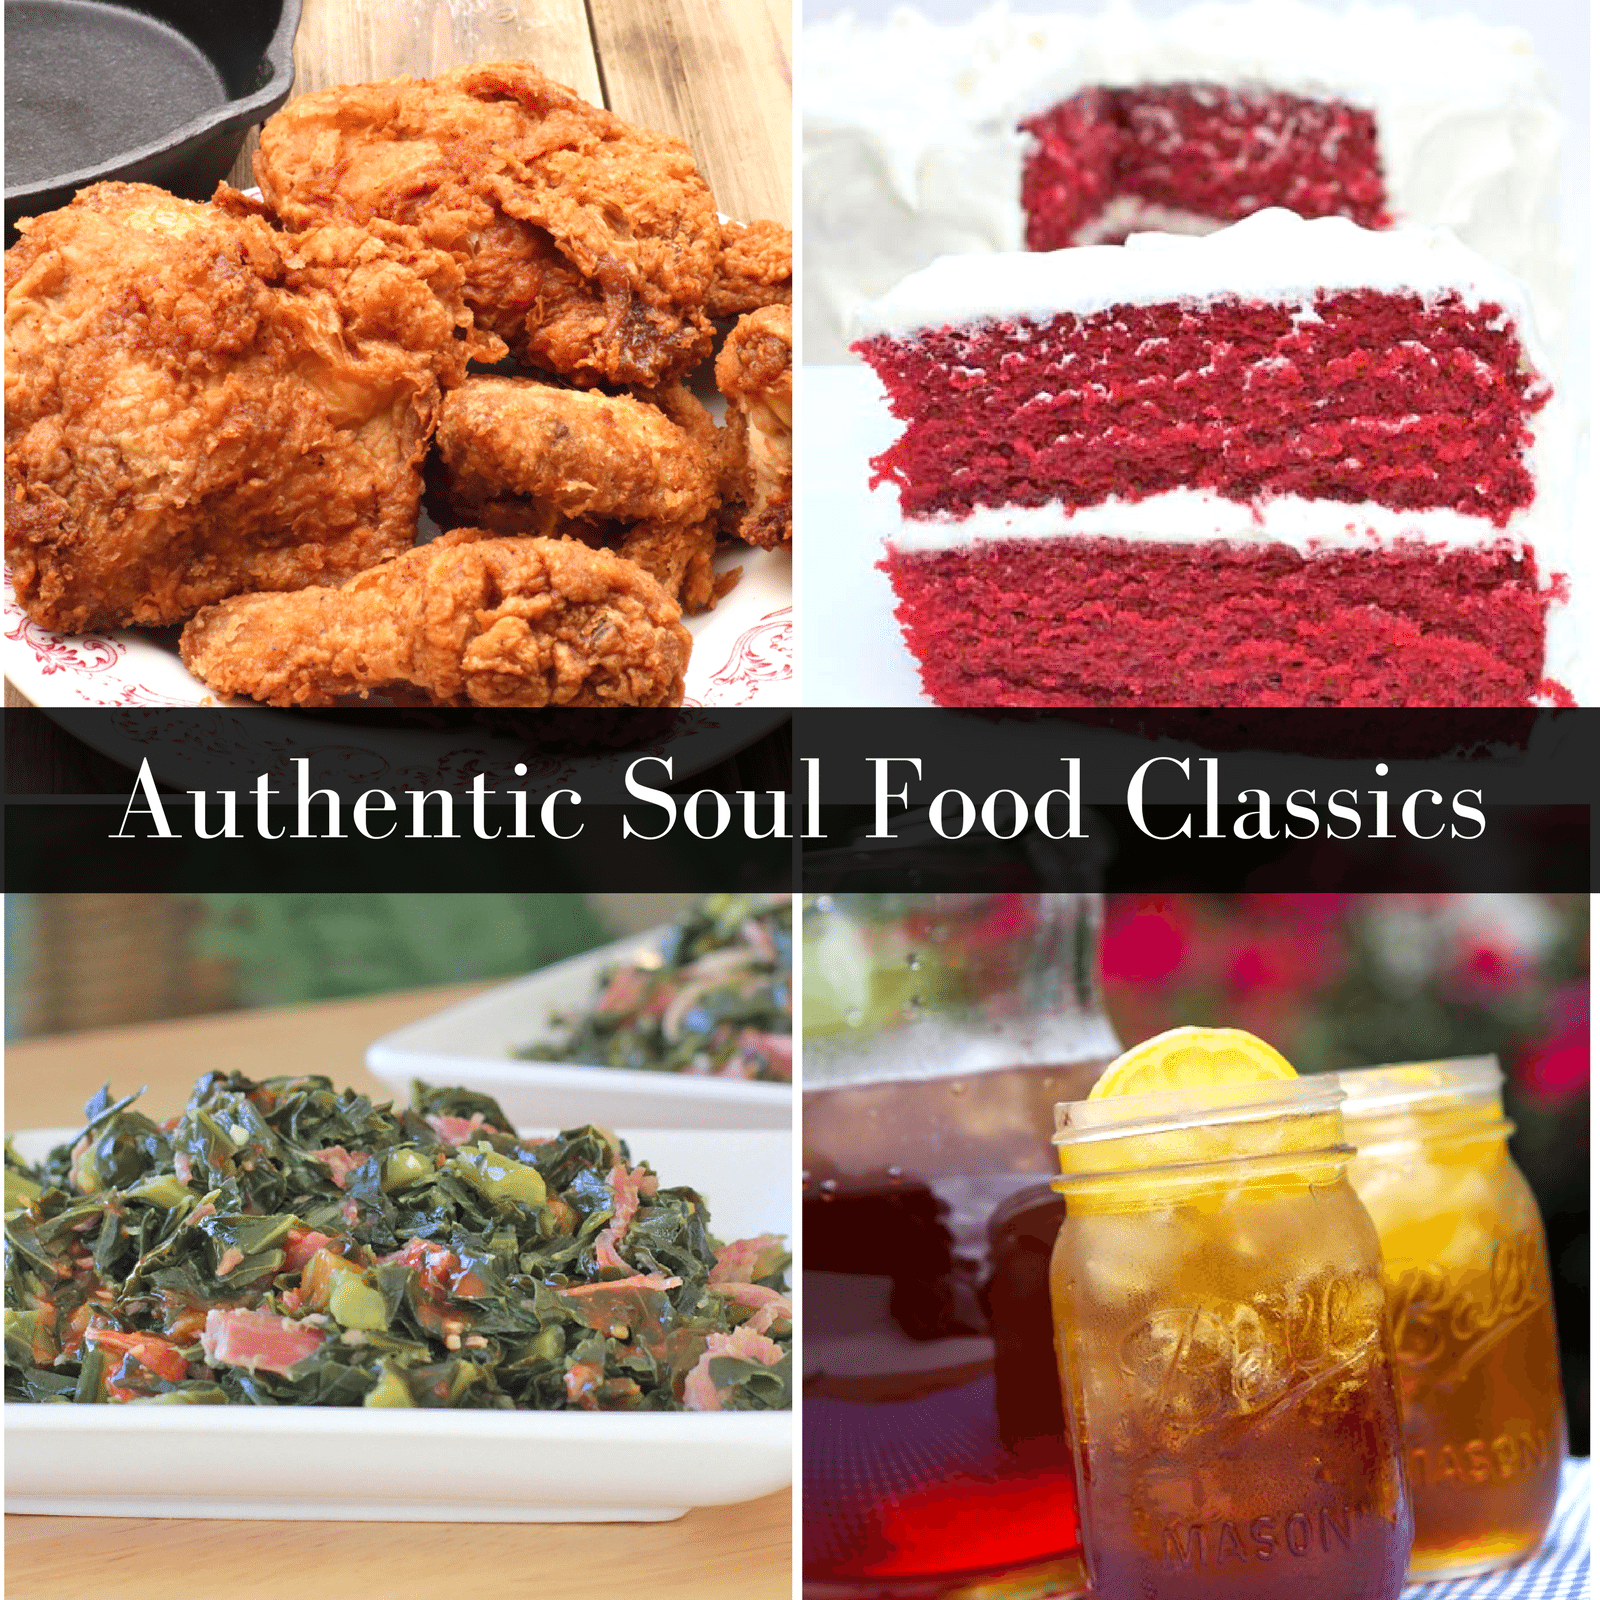 Soul food collard greens recipes divas can cook pound cakes forumfinder Choice Image